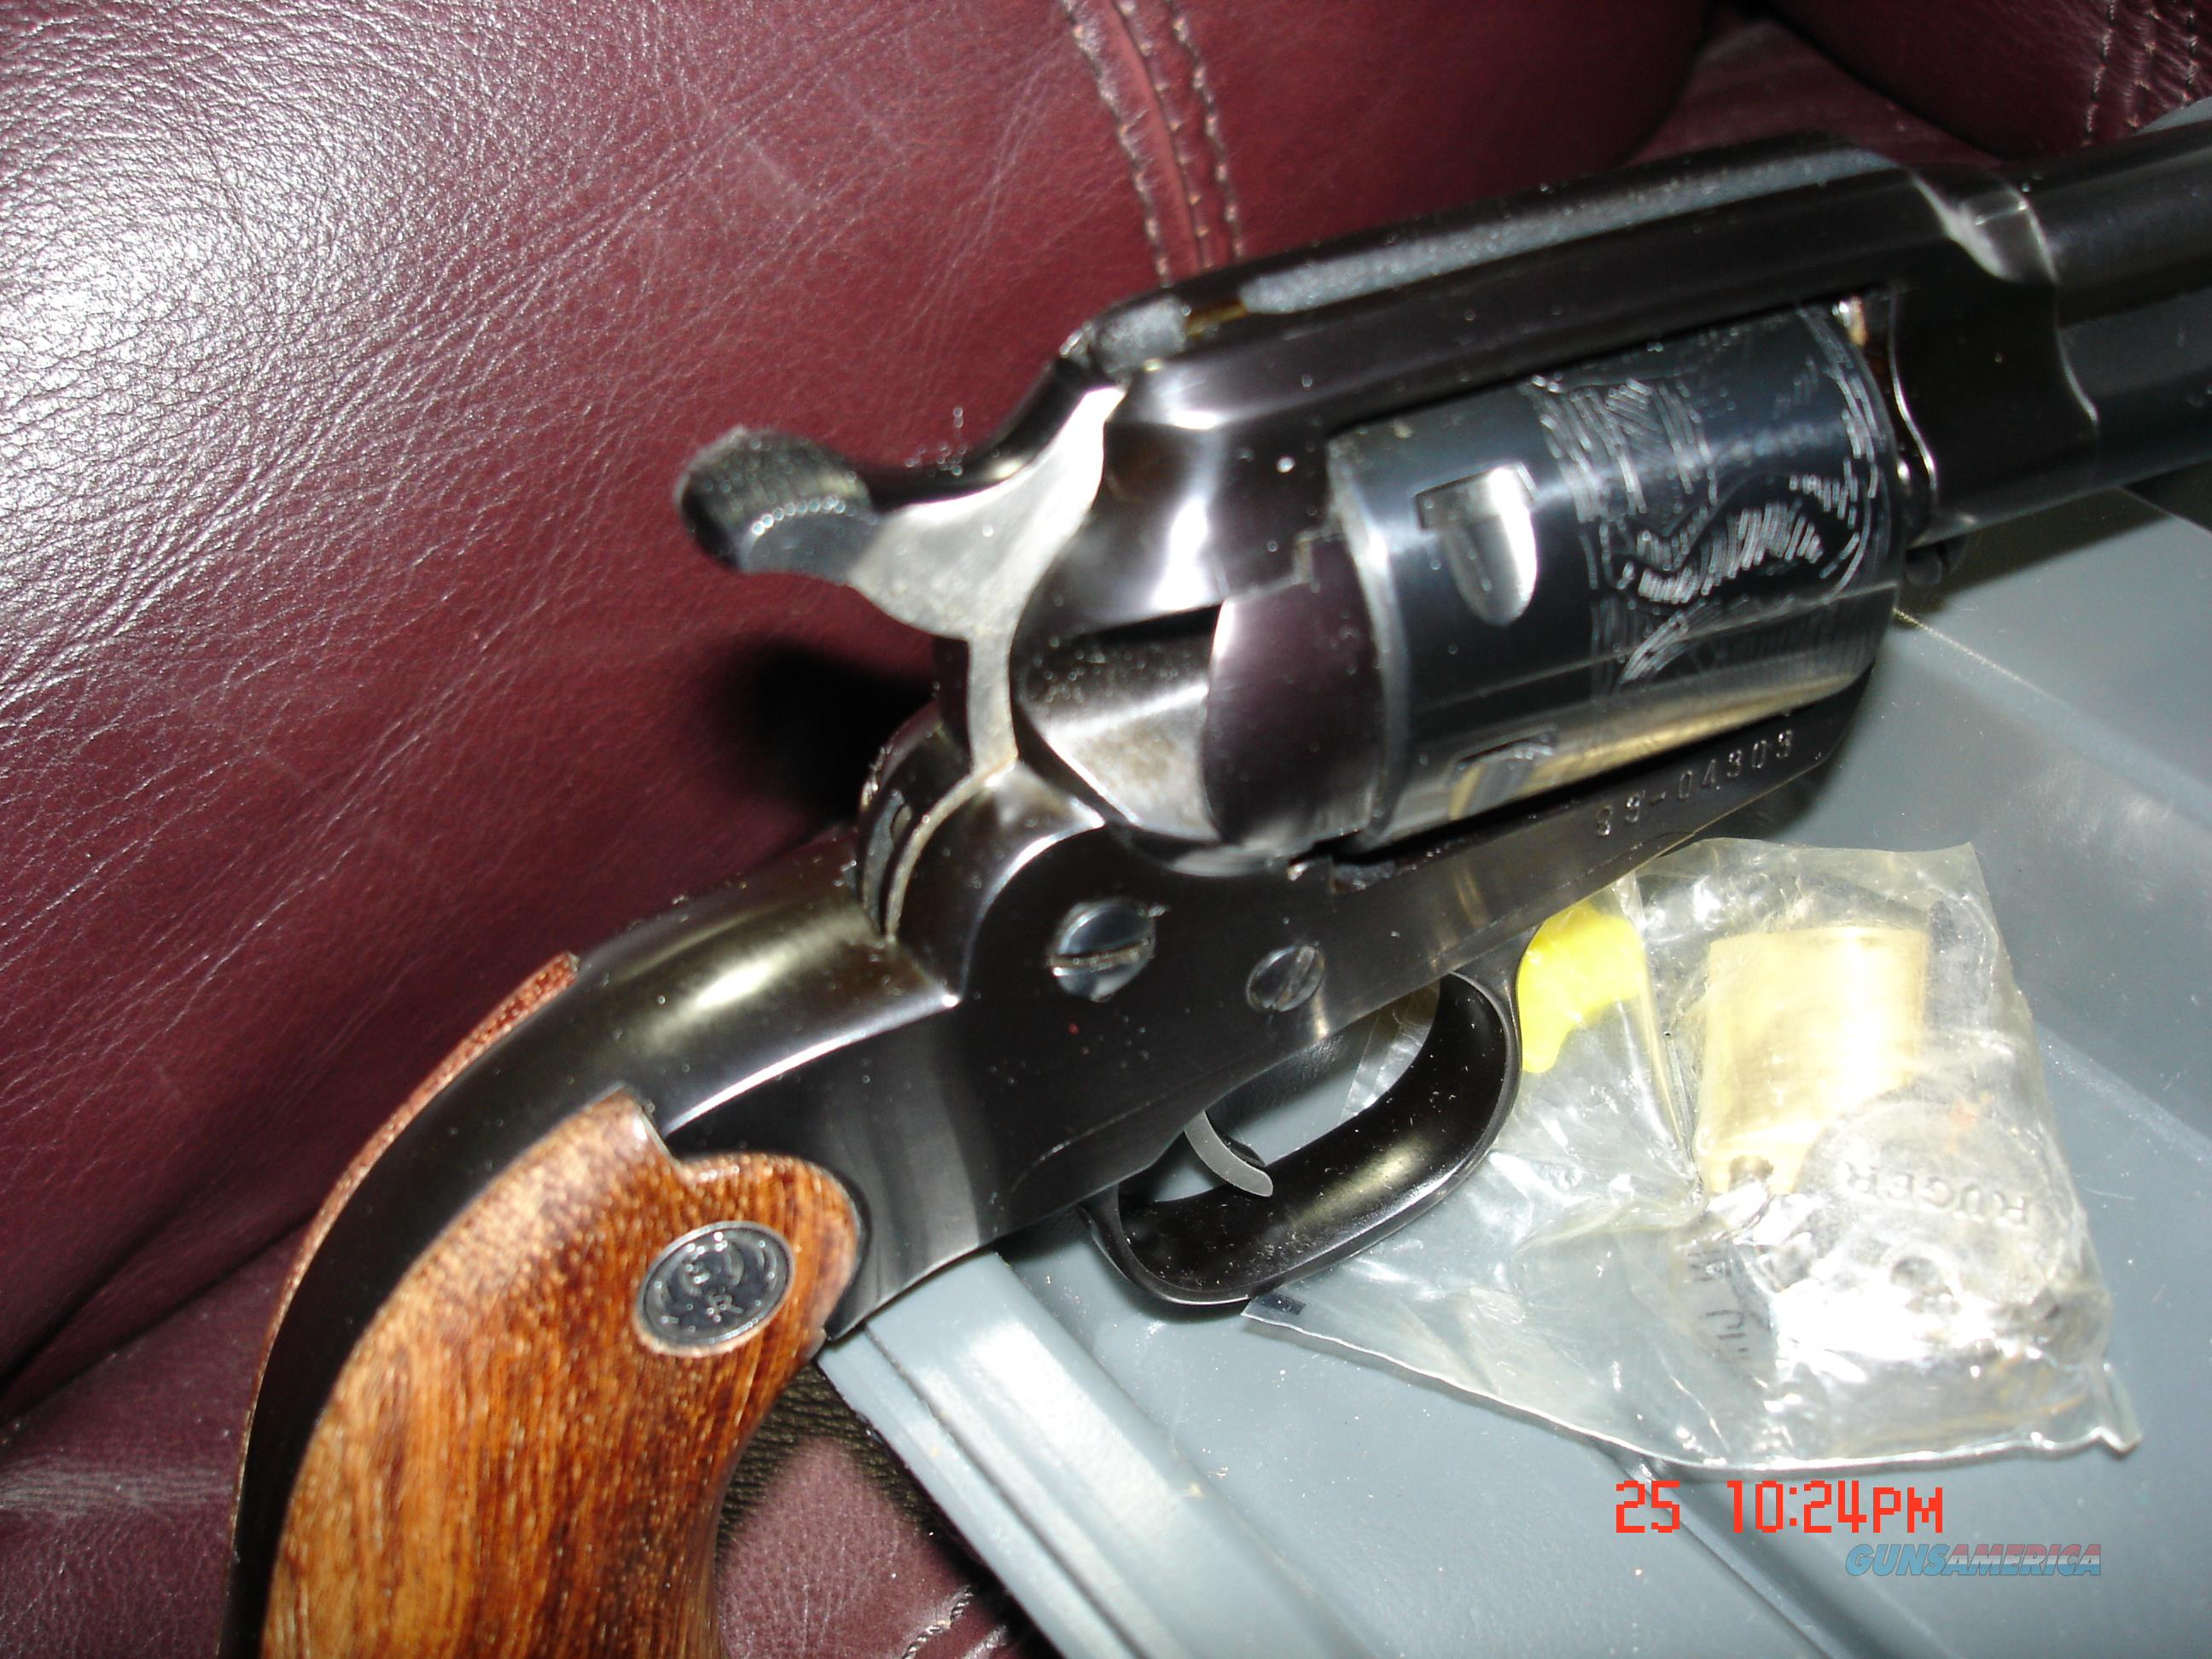 RUGER NEW BEARCAT .22 LR Revolver - NEW in BOX  Guns > Pistols > Ruger Single Action Revolvers > Single Six Type